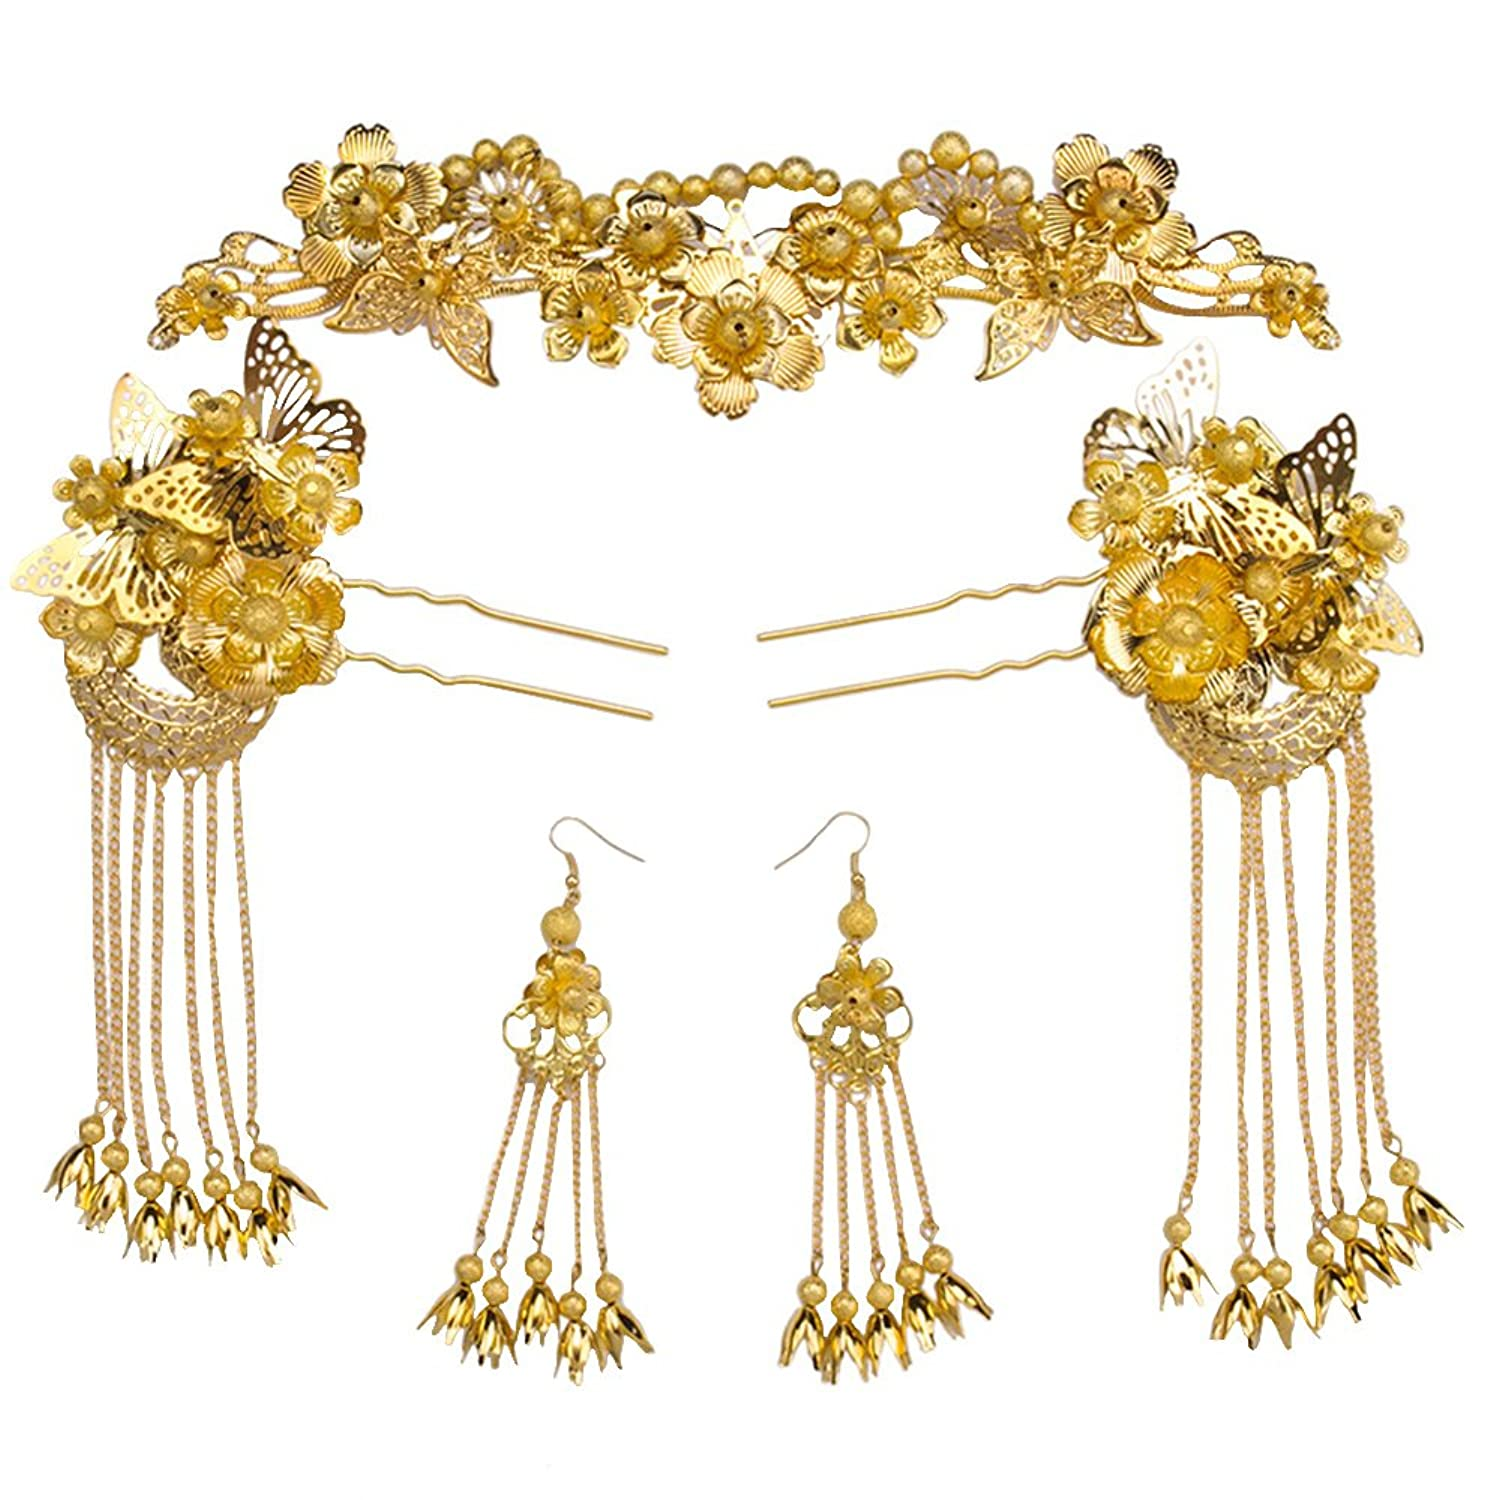 Kanrome Gold Color Phoenix Coronet Hair Jewelry Sets Chinese Style Brides Headpiece Ornaments